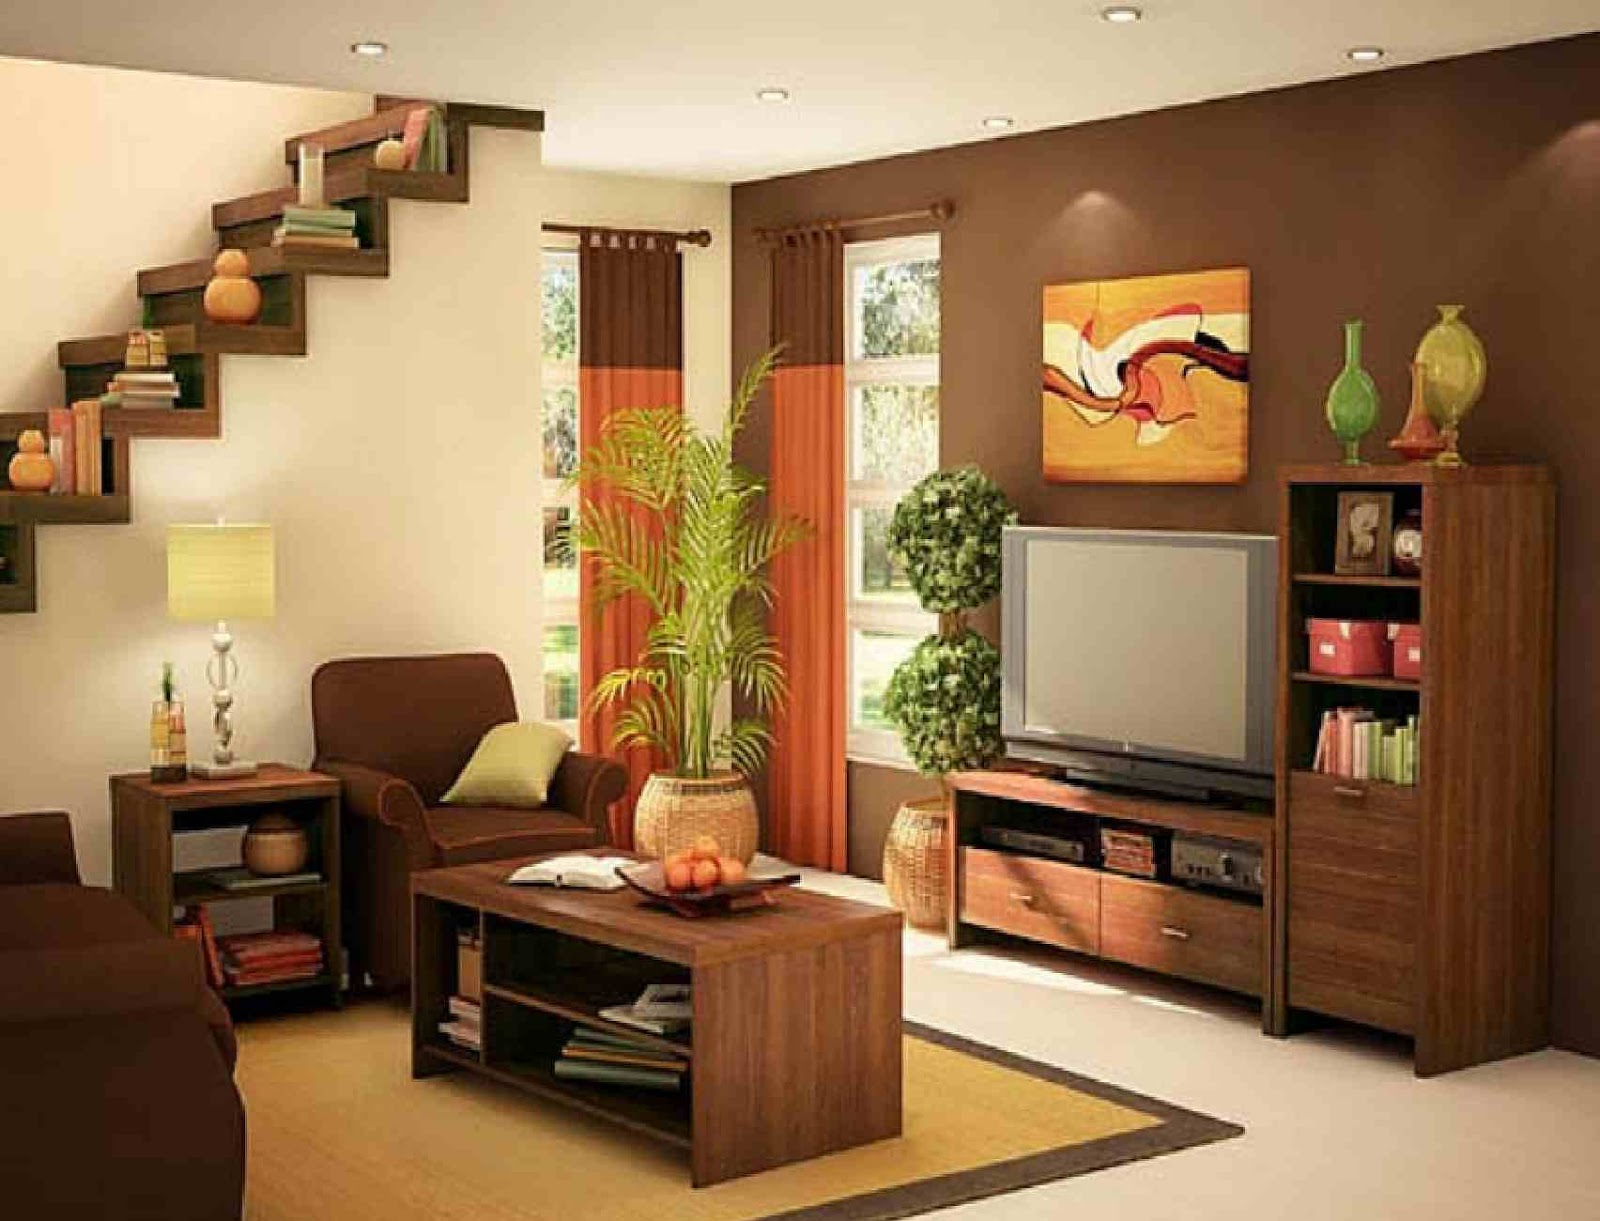 Home interior designs simple living room designs for House interior design living room